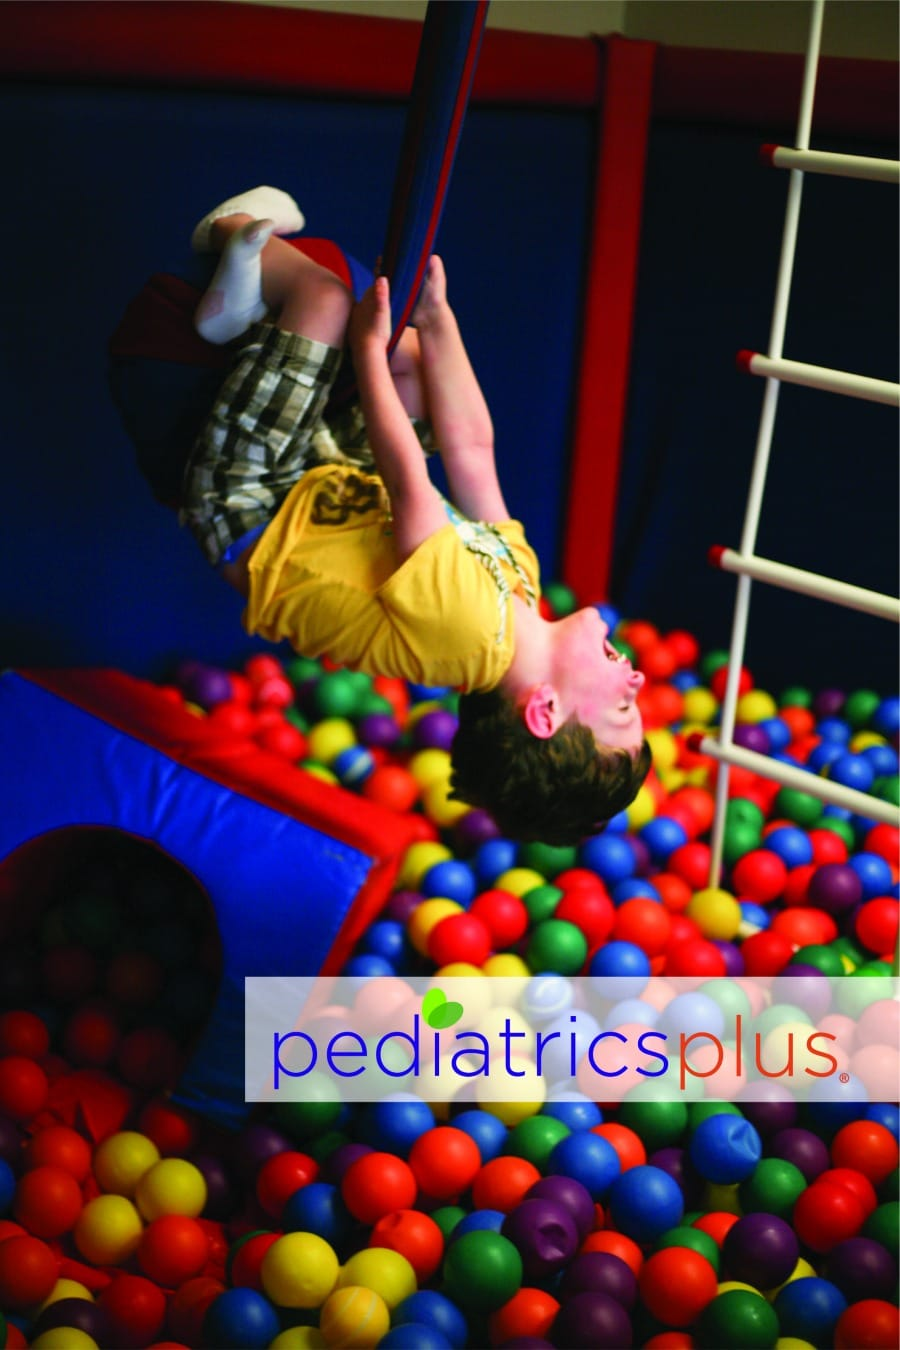 Pediatrics Plus Frisco